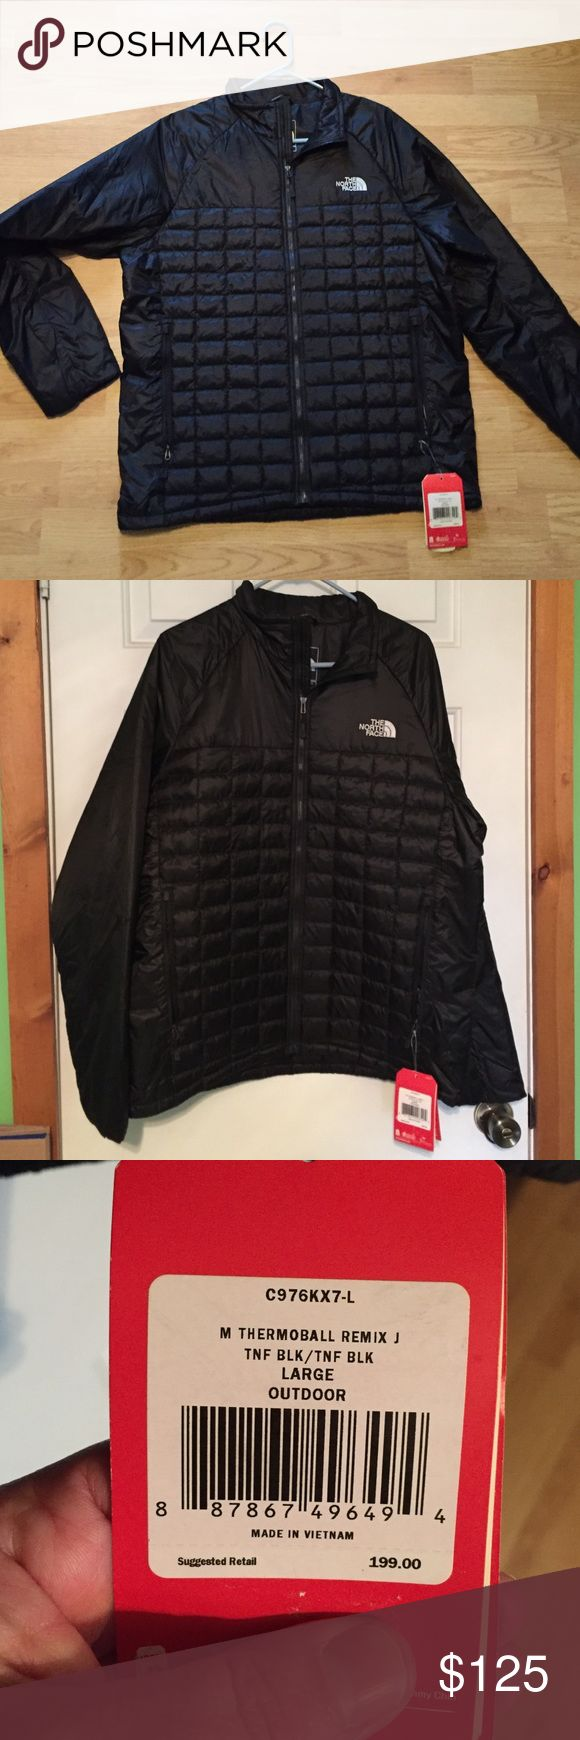 NWT Men's The North Face Thermoball Jacket Mens Large Active Fit Thermoball Jacket by The Northface. This Jacket features Thermoball technology which provides warmth without the bulk. It's also water resistant. The North Face Jackets & Coats